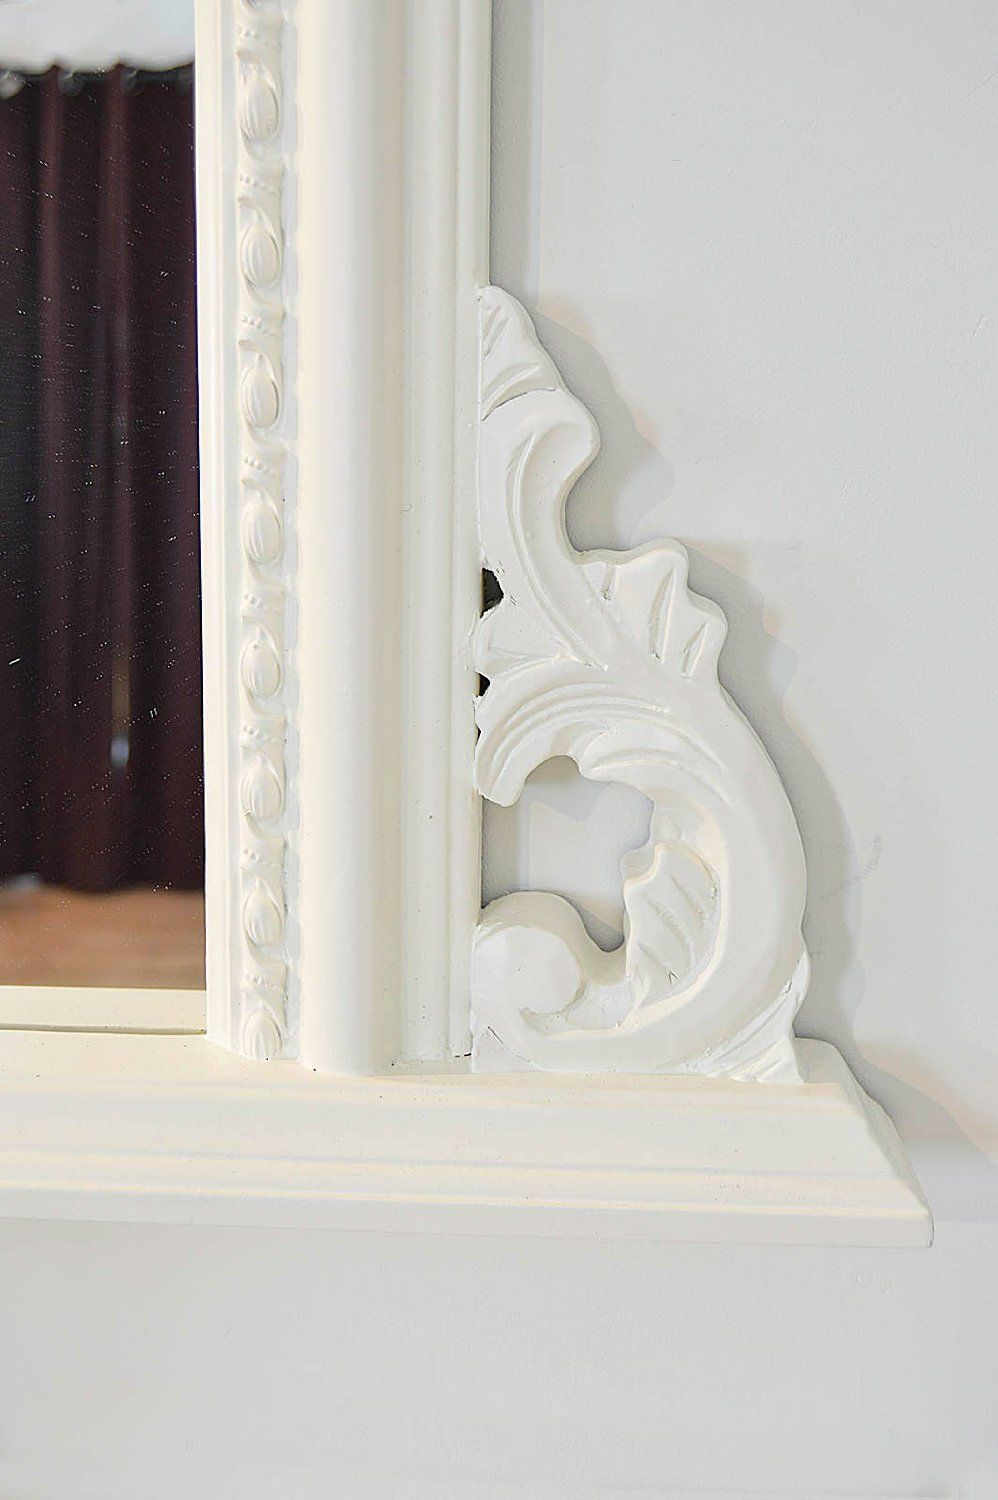 White arched top decorative ornate mirror large 50x36 for Fancy white mirror